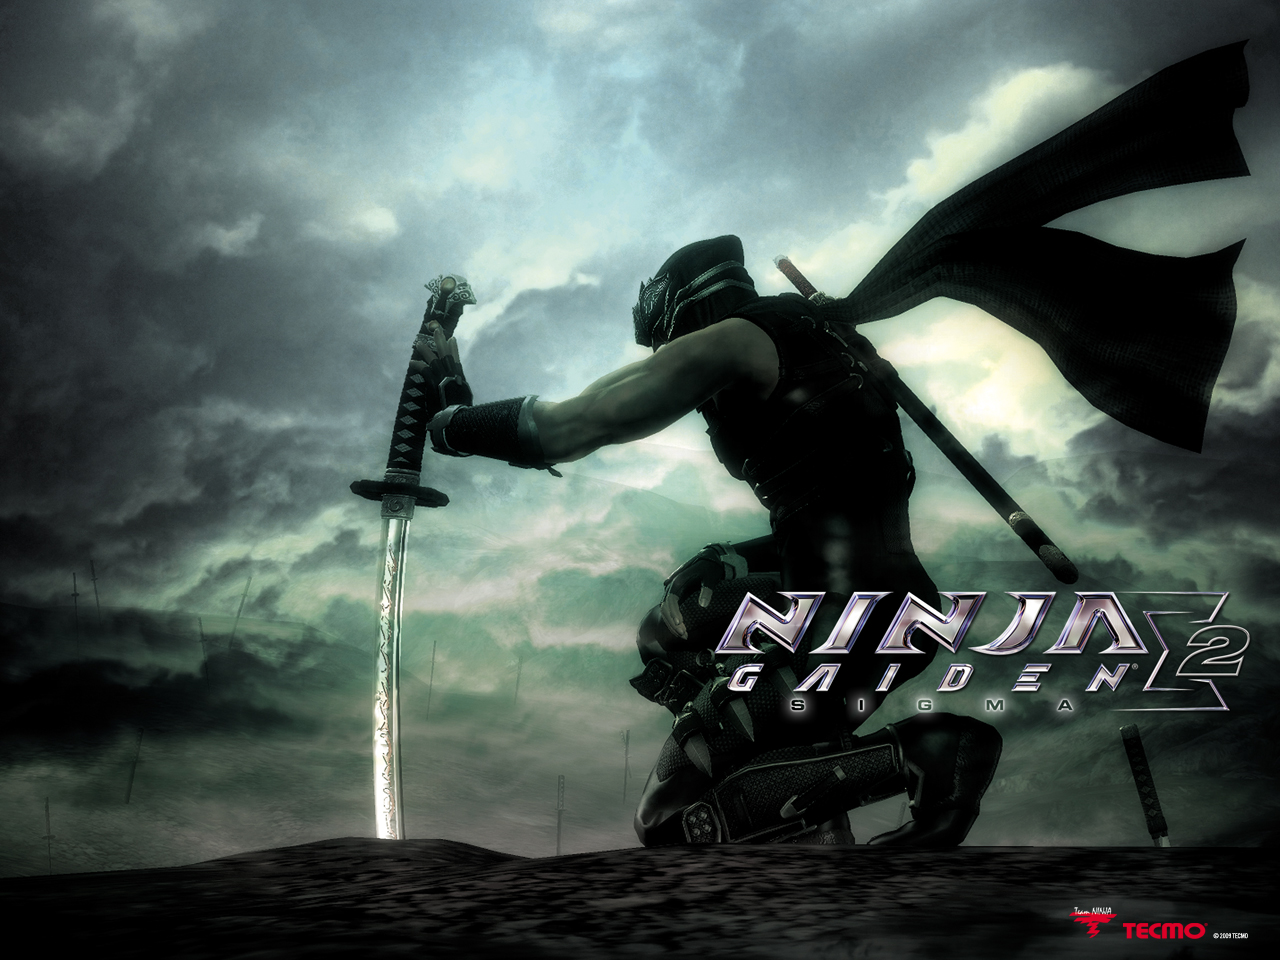 Wallpapers juegos Ninja-gaiden-sigma-2-wallpaper-9-1280x960